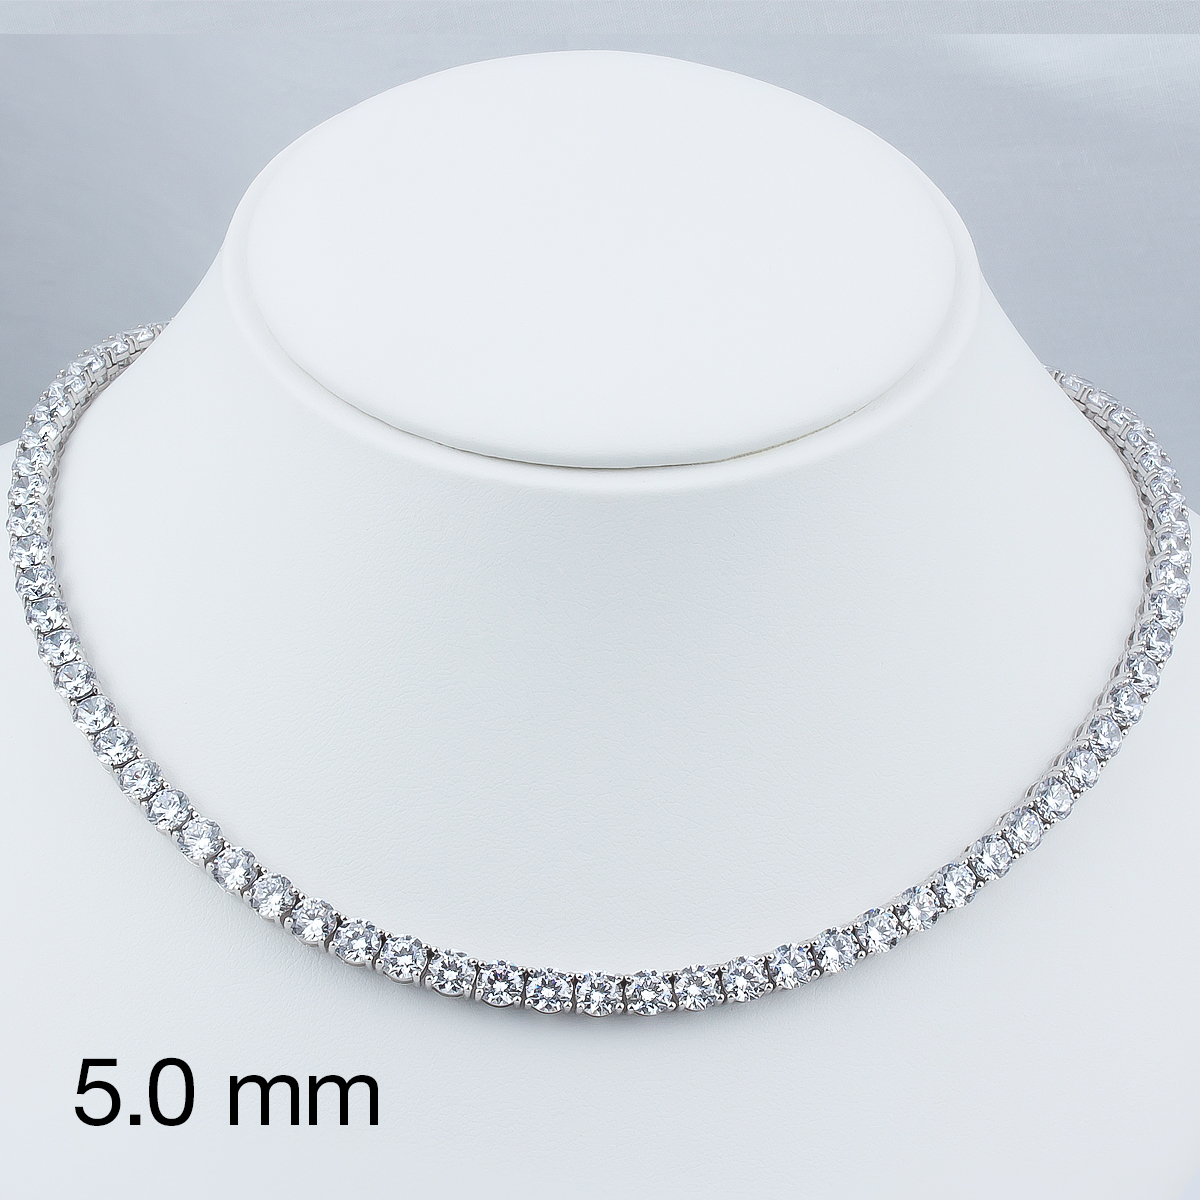 Classic Round Cubic Zirconia Eternity Tennis Necklace with 5.0mm Stones